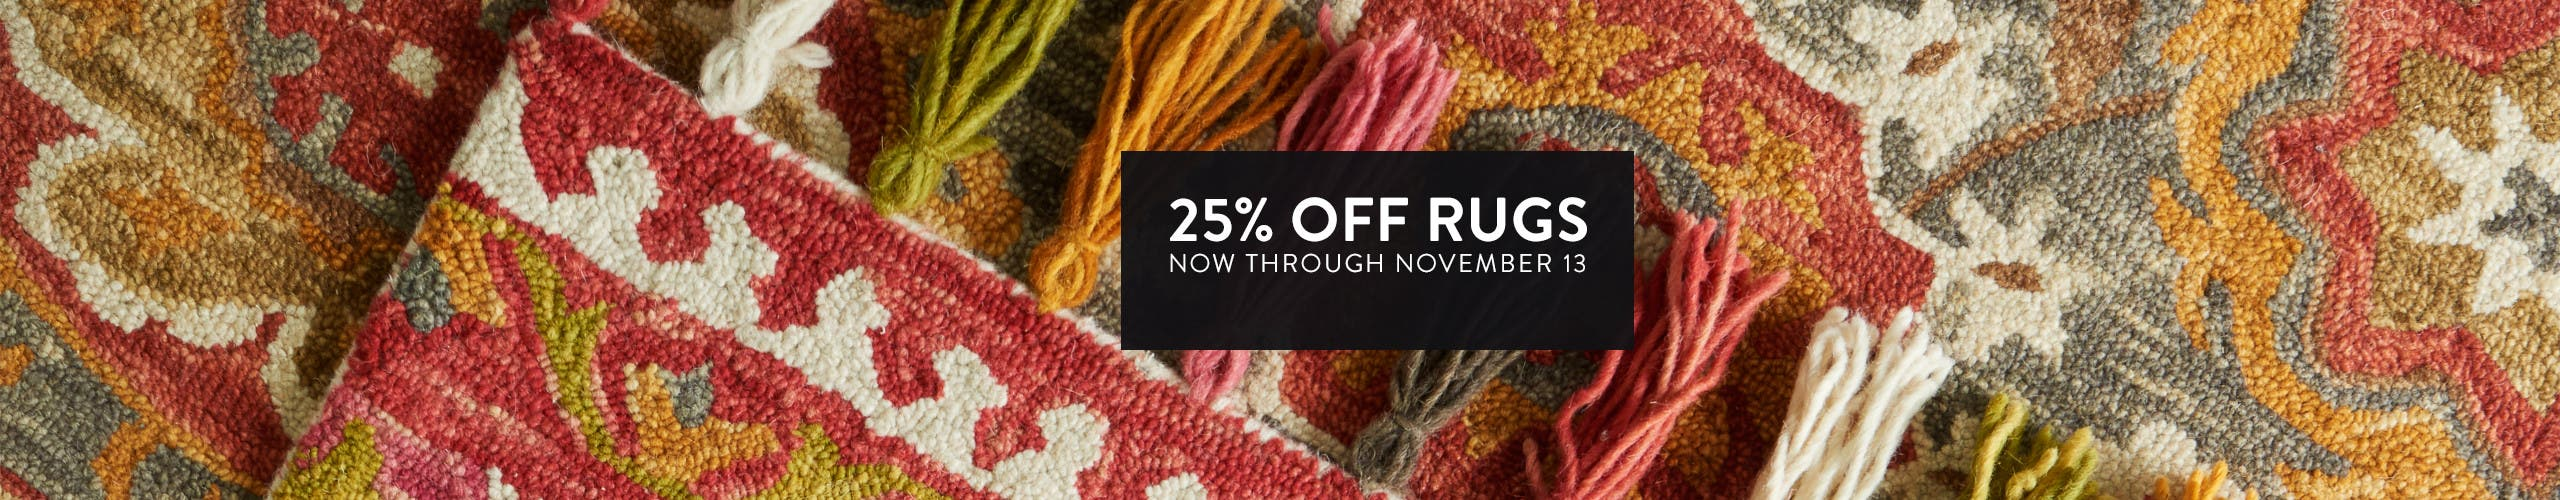 25% off rugs now through November 13.